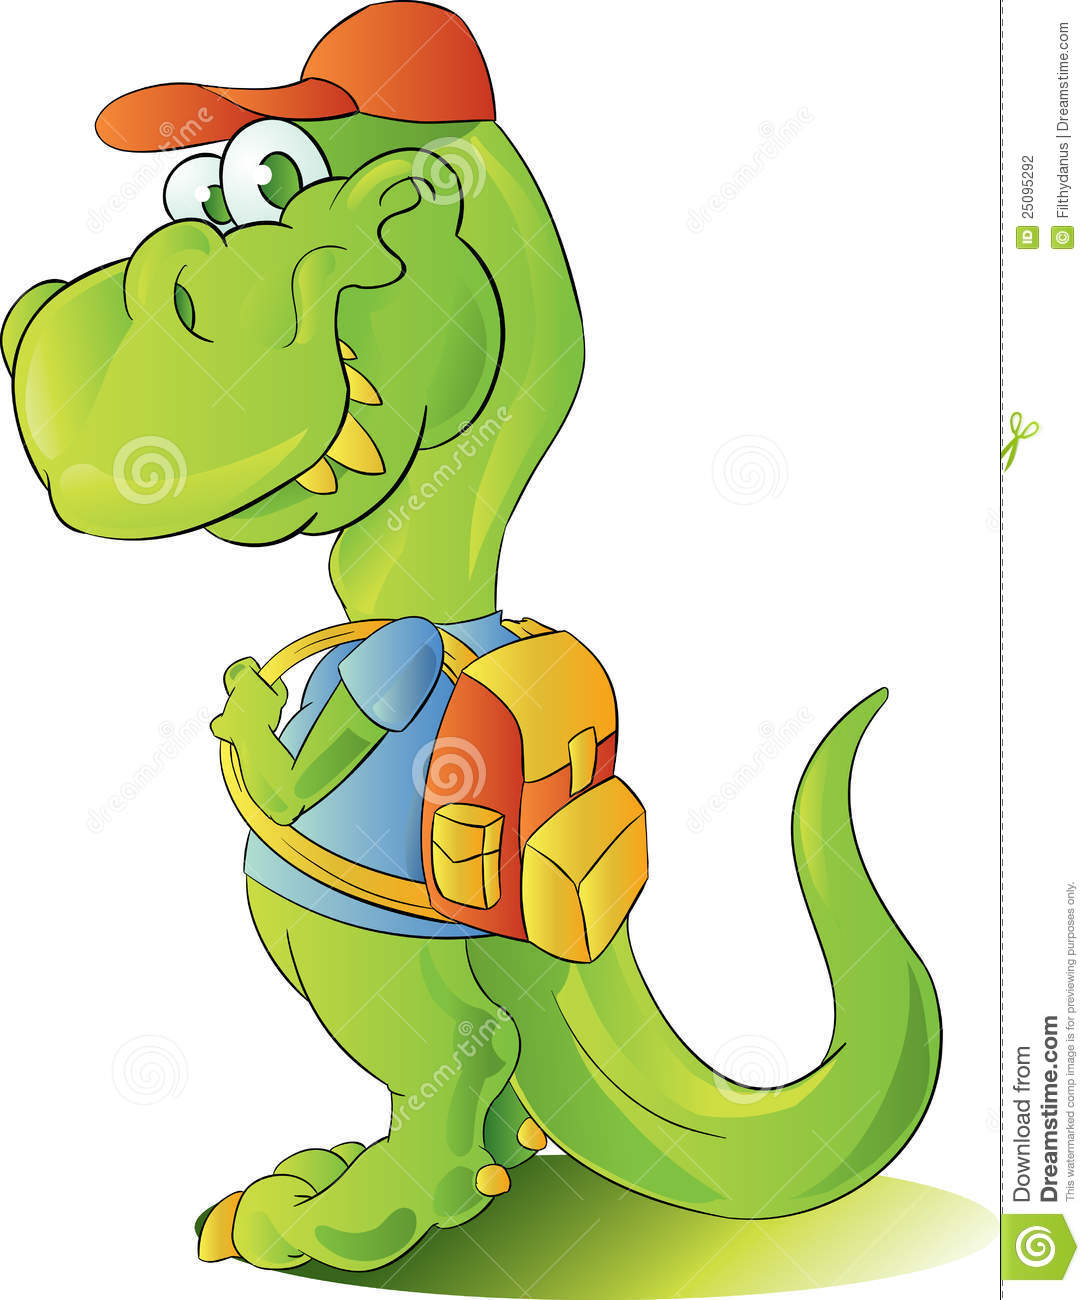 Dinosaur And Children Stock Vector - Image: 55475397